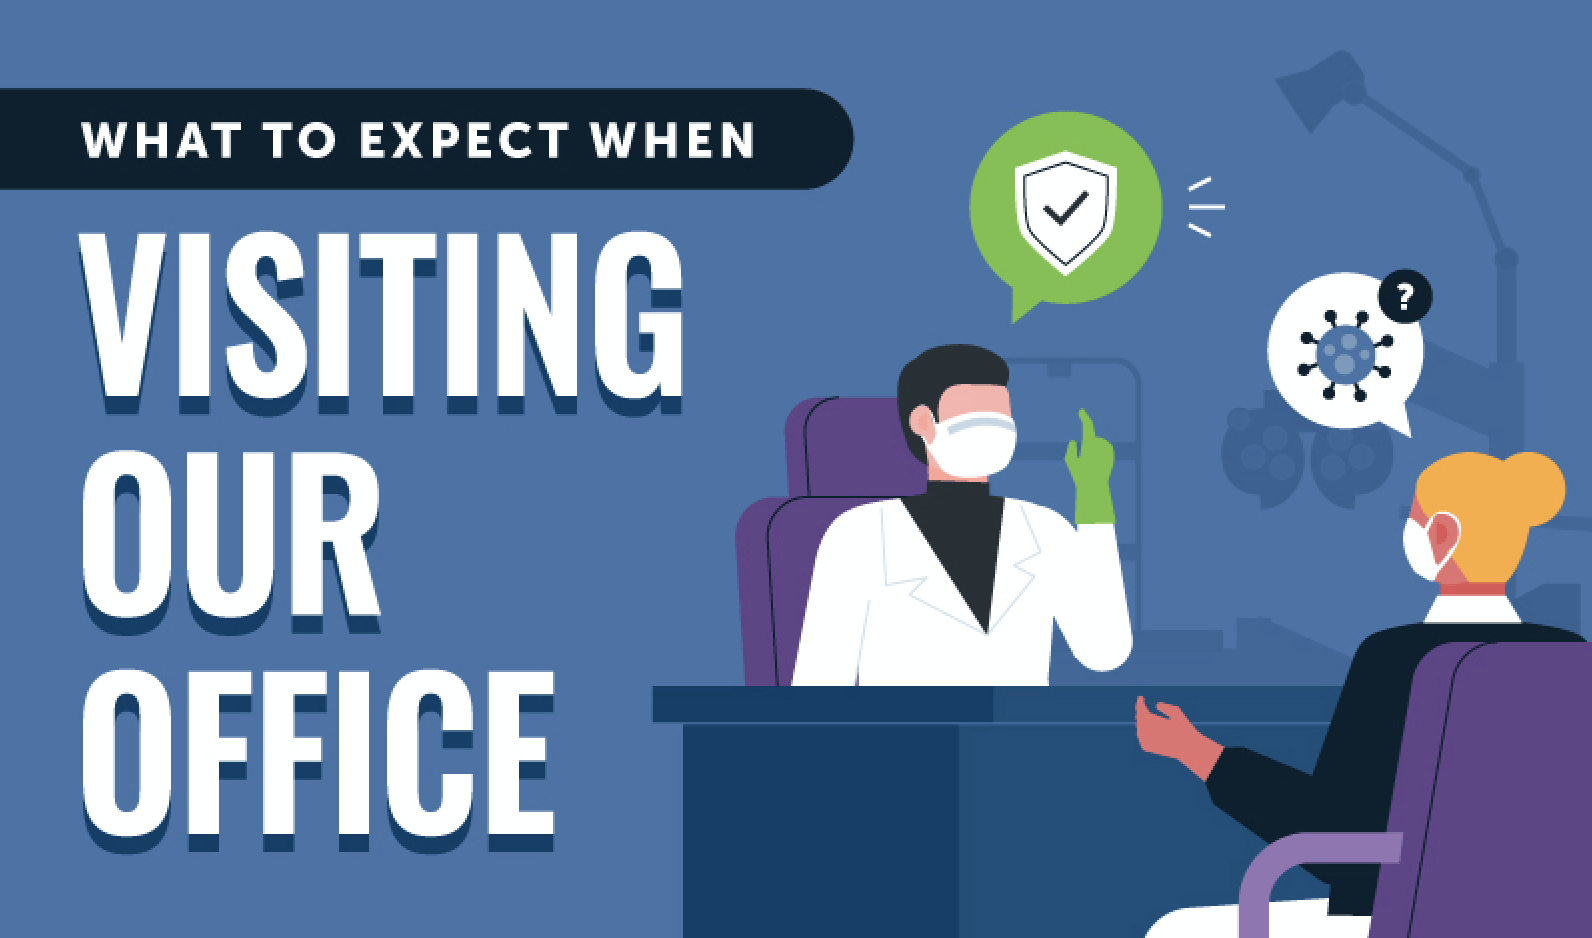 What To Expect When Visiting Our Office [infographic]